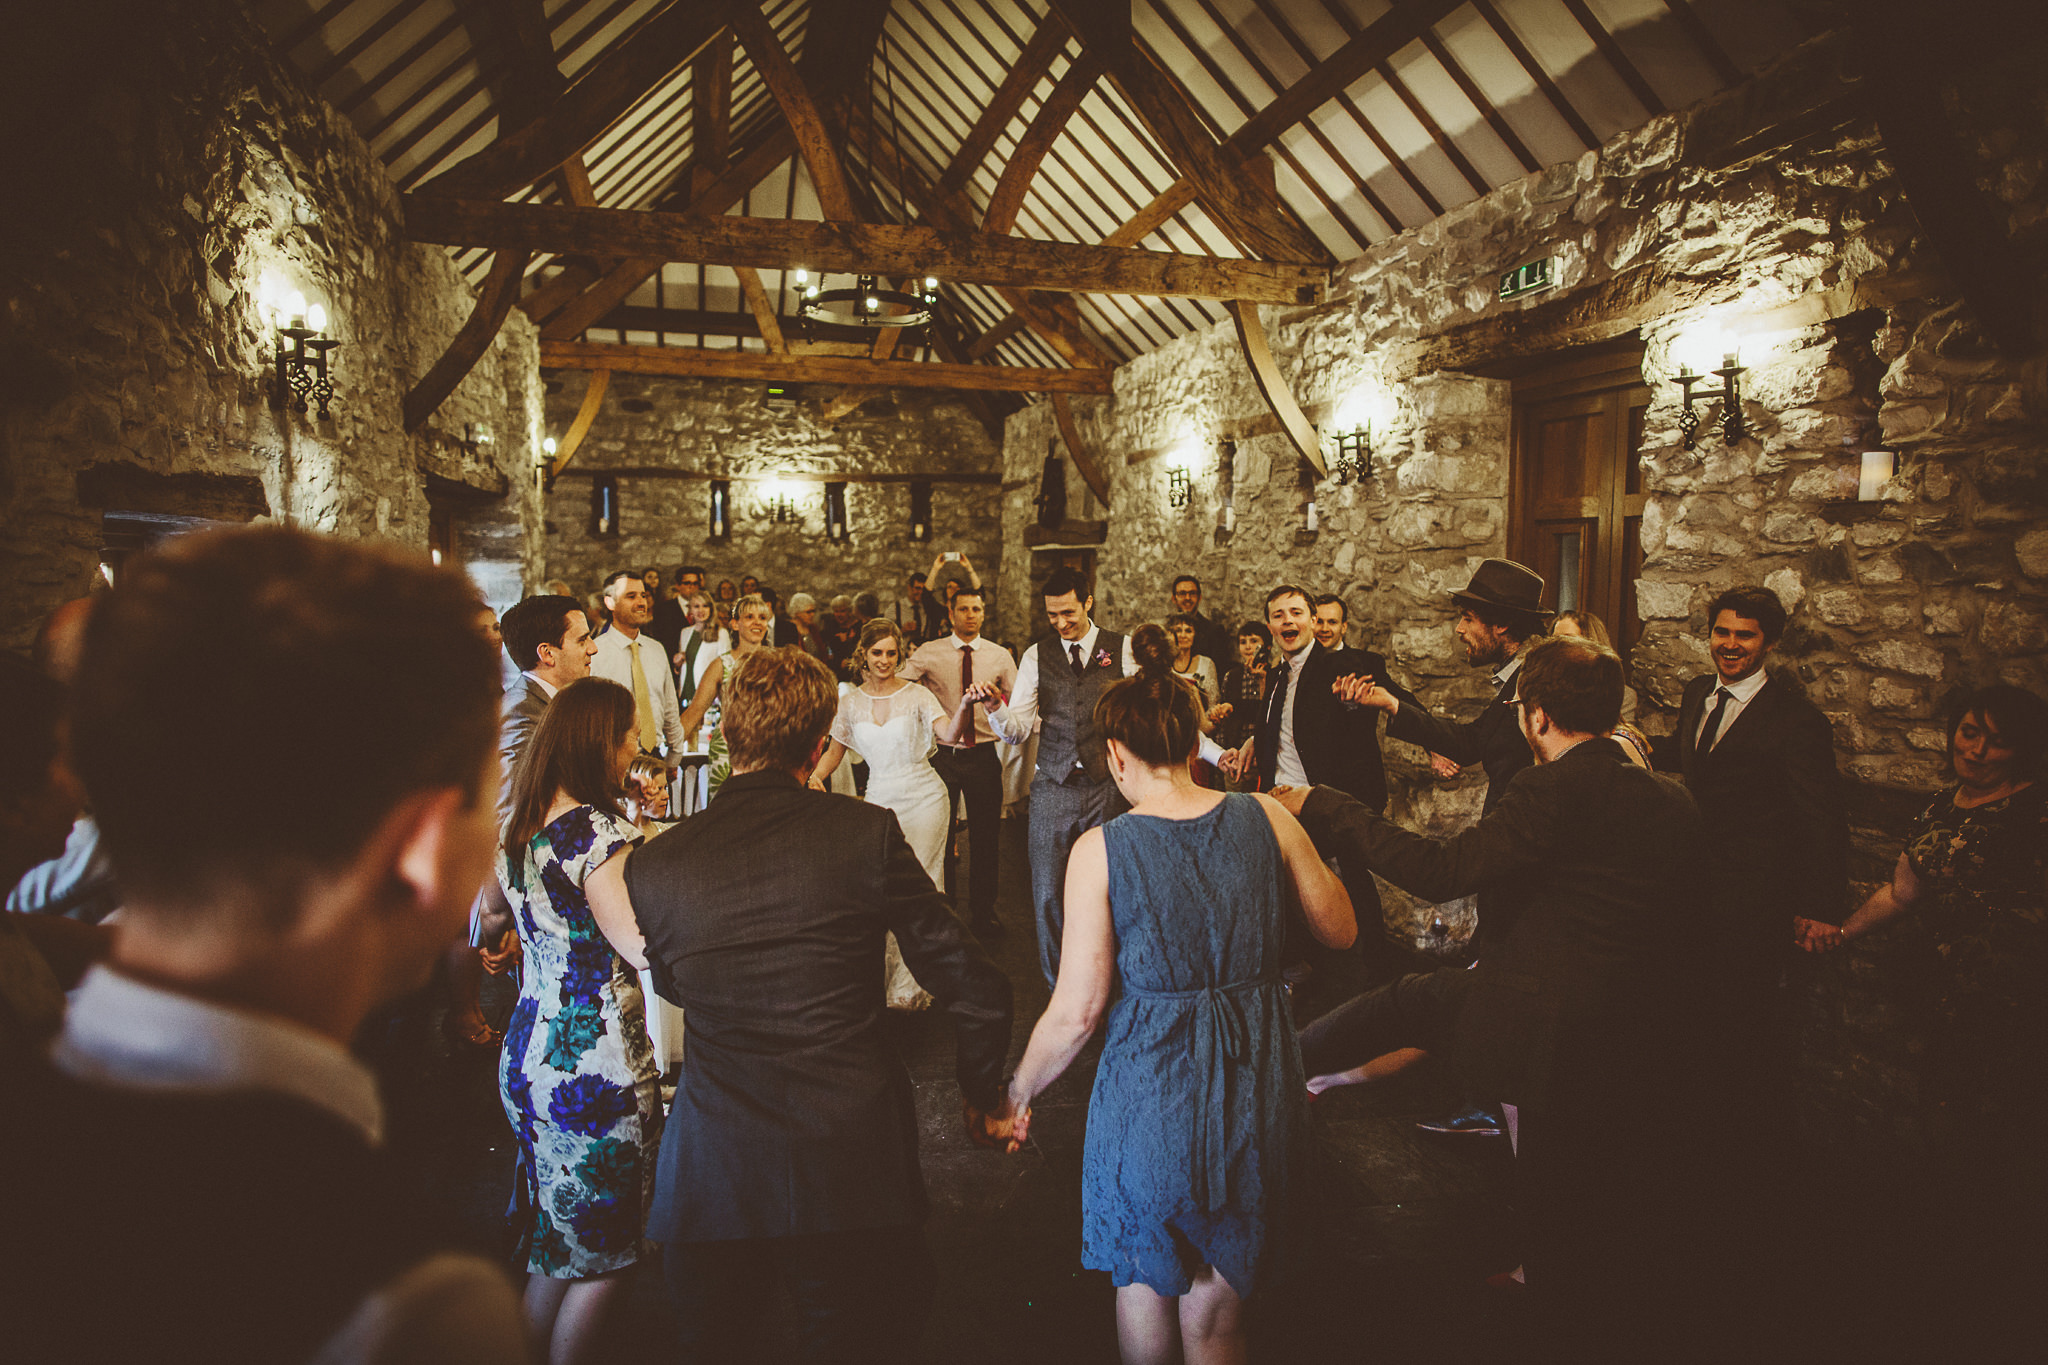 plas-isaf-corwen-north wales wedding-photography-photographer-91082